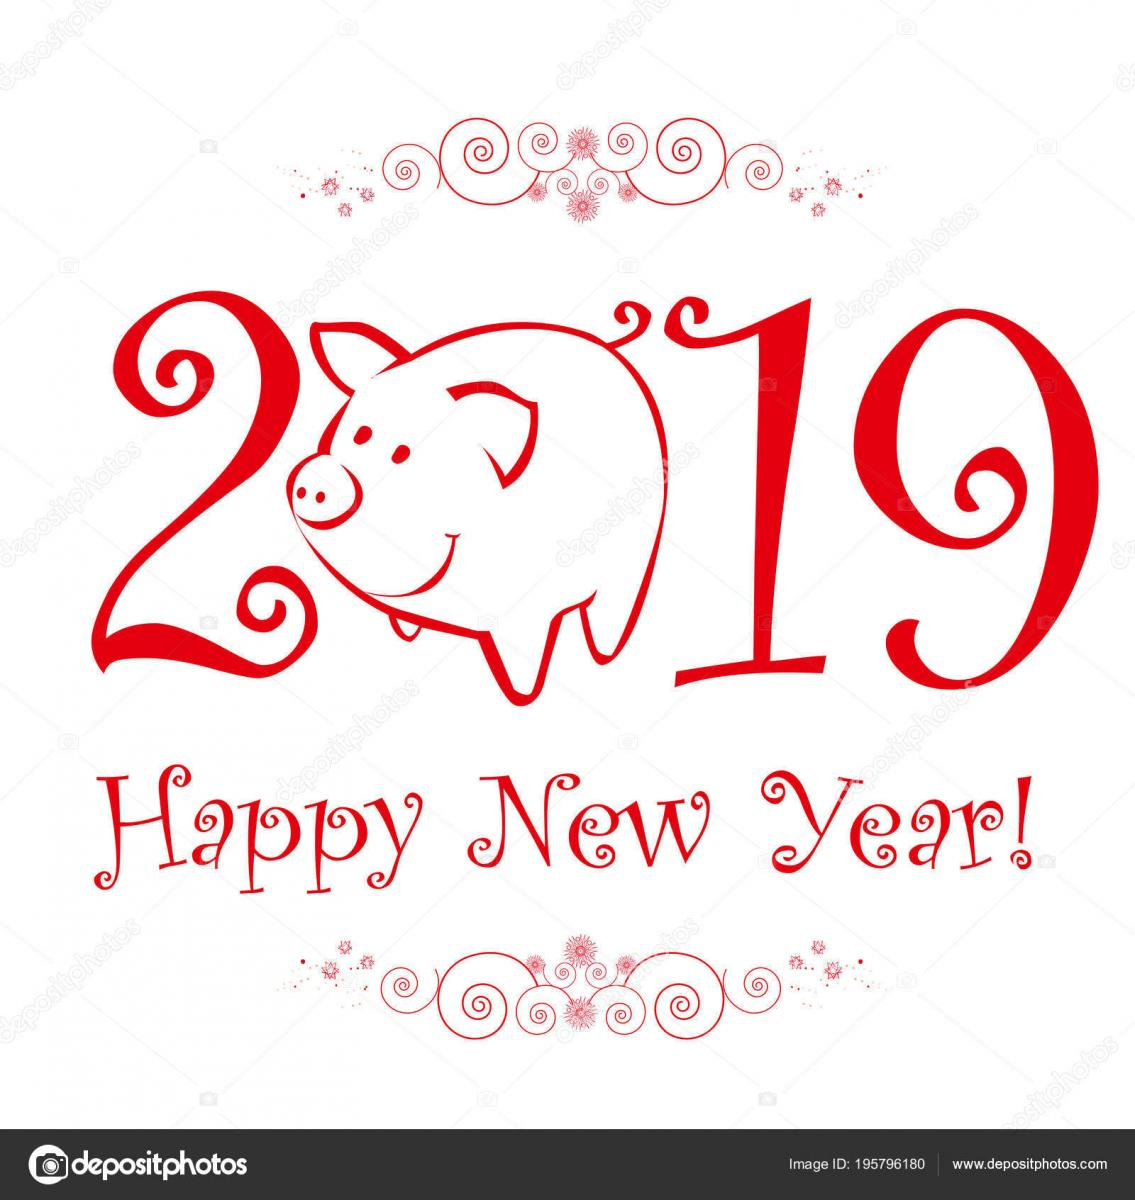 depositphotos_195796180-stock-illustration-cute-funny-pig-happy-new.jpg